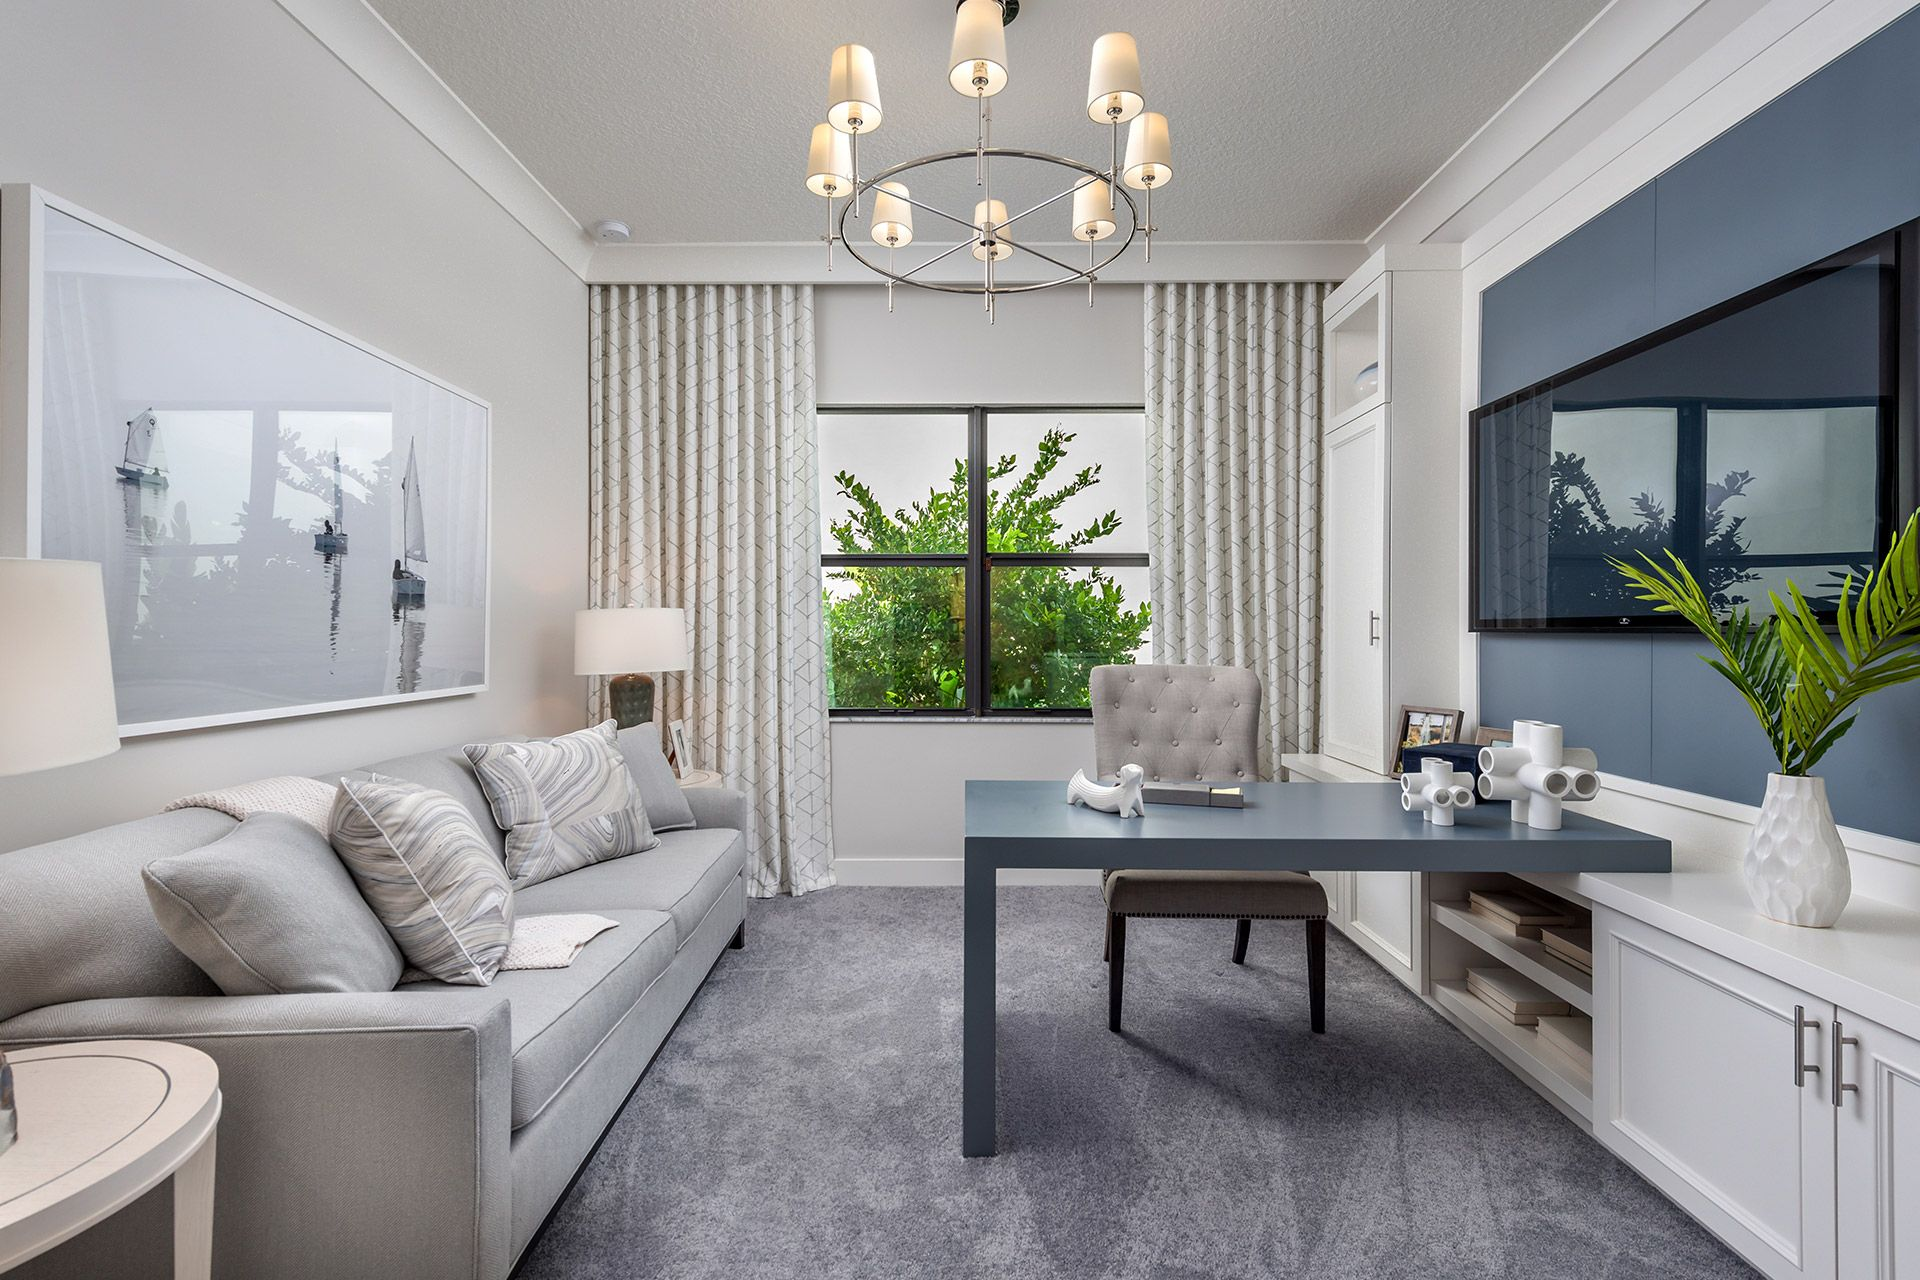 Living Area featured in the Maui By GL Homes in Palm Beach County, FL